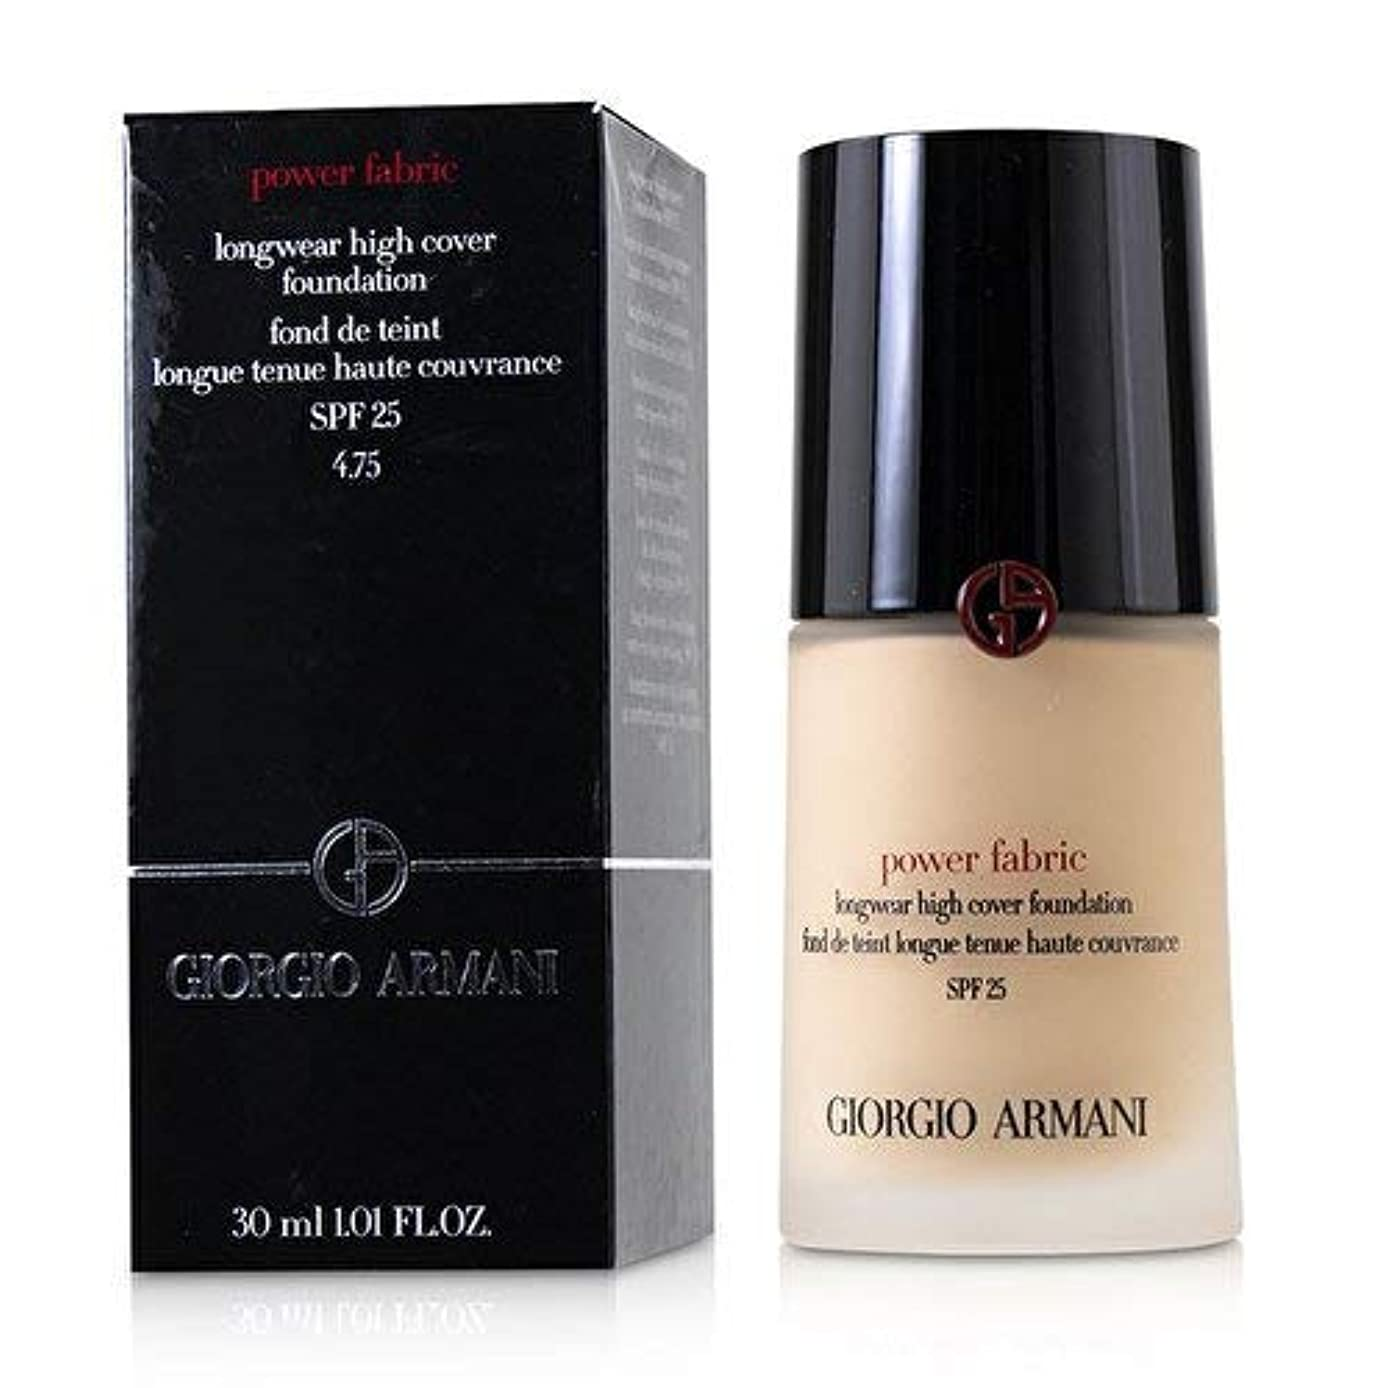 ジョルジオアルマーニ Power Fabric Longwear High Cover Foundation SPF 25 - #4.75 30ml/1.01oz並行輸入品